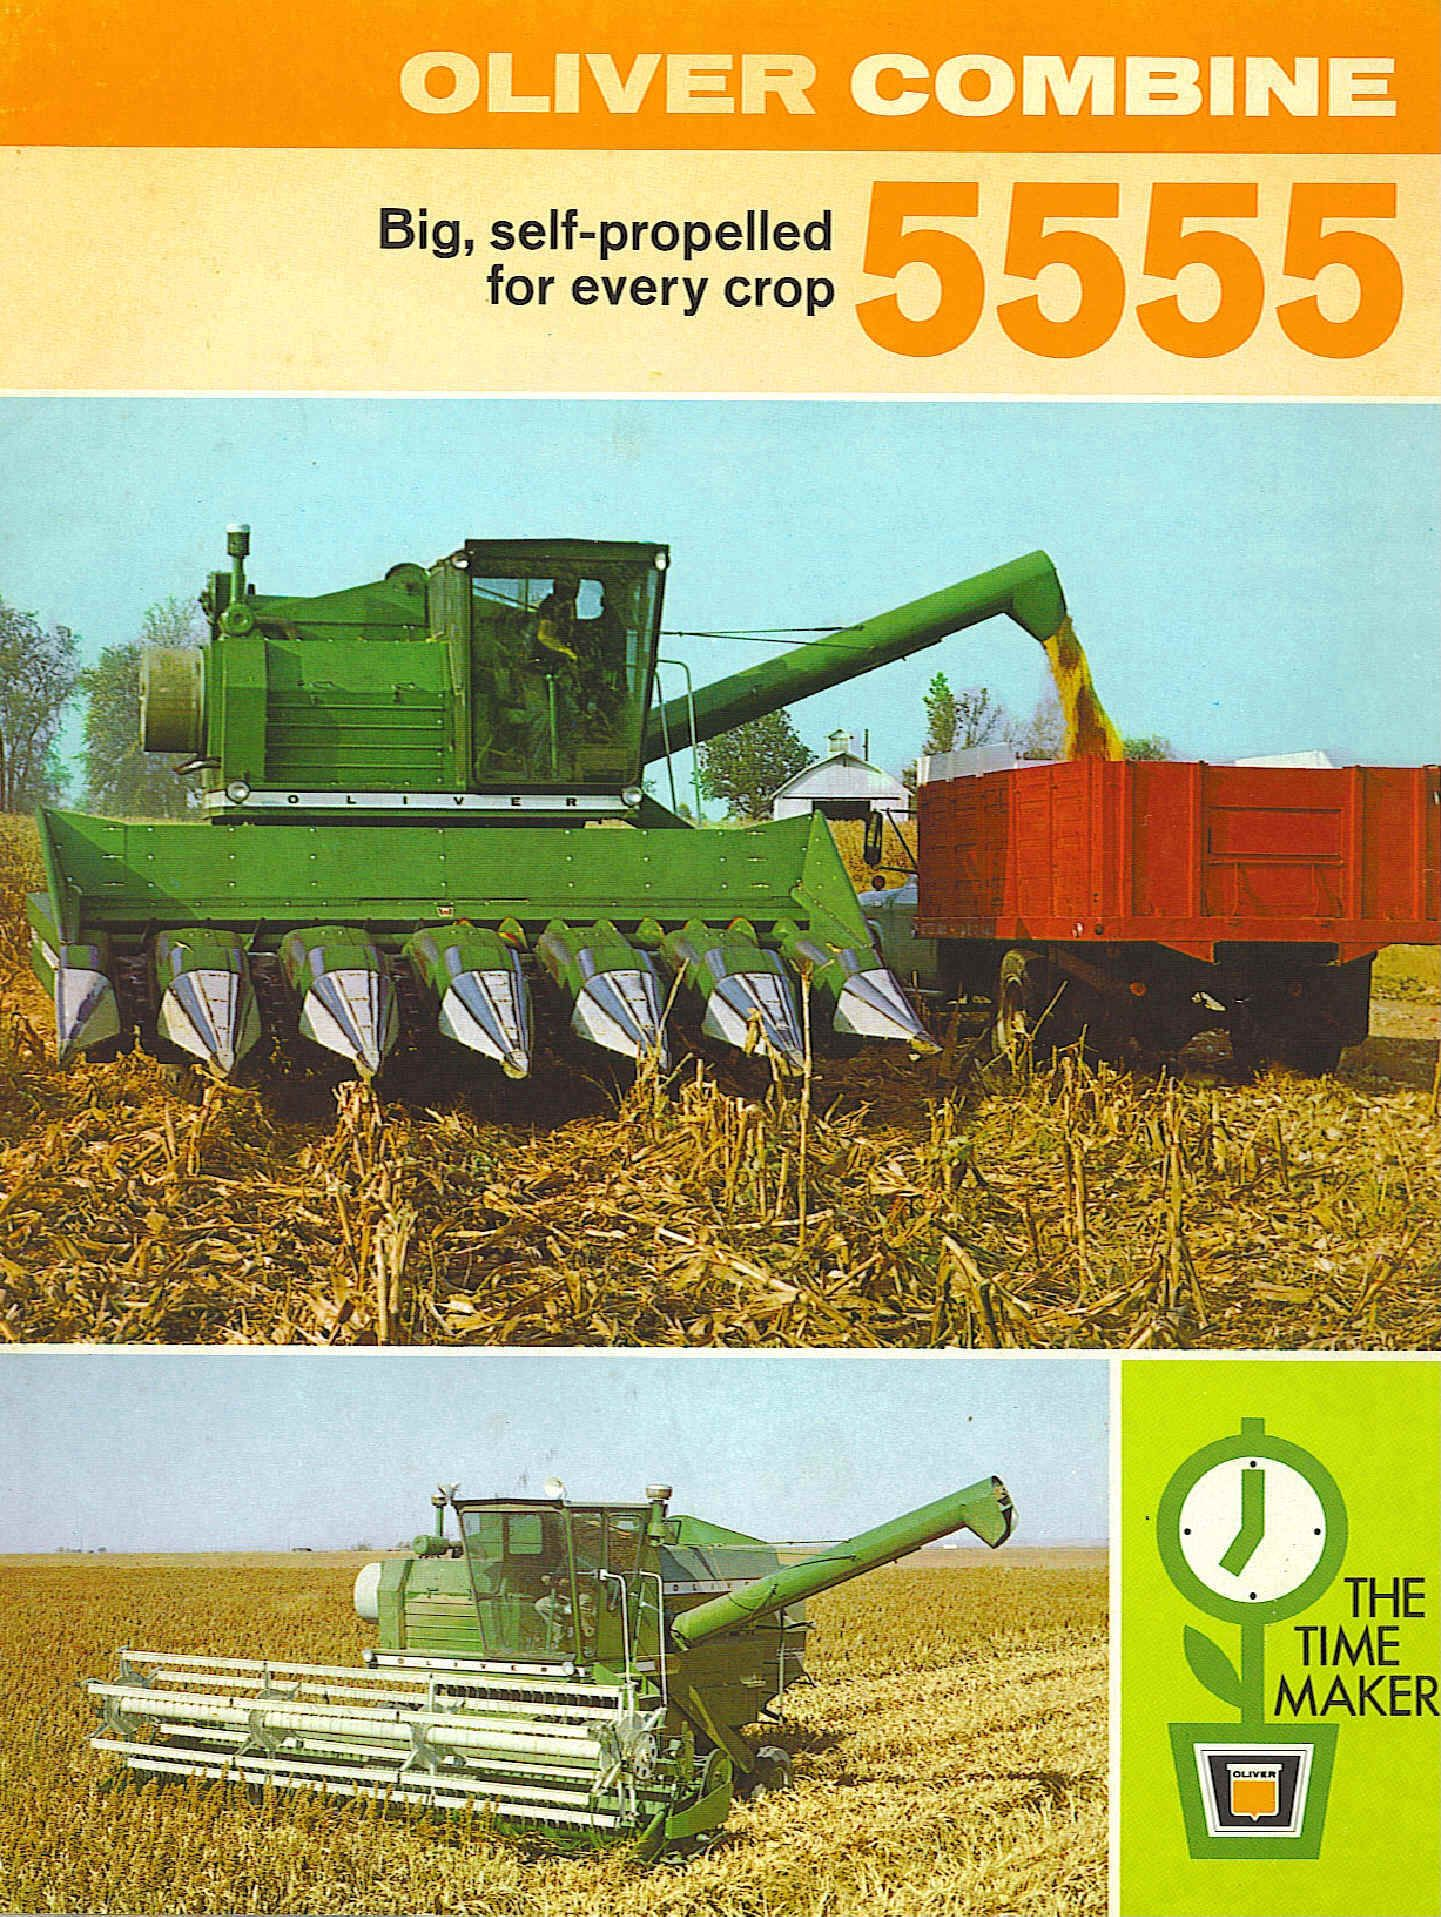 Re: Video of White 7800 in action - Page 2 - The Combine Forum